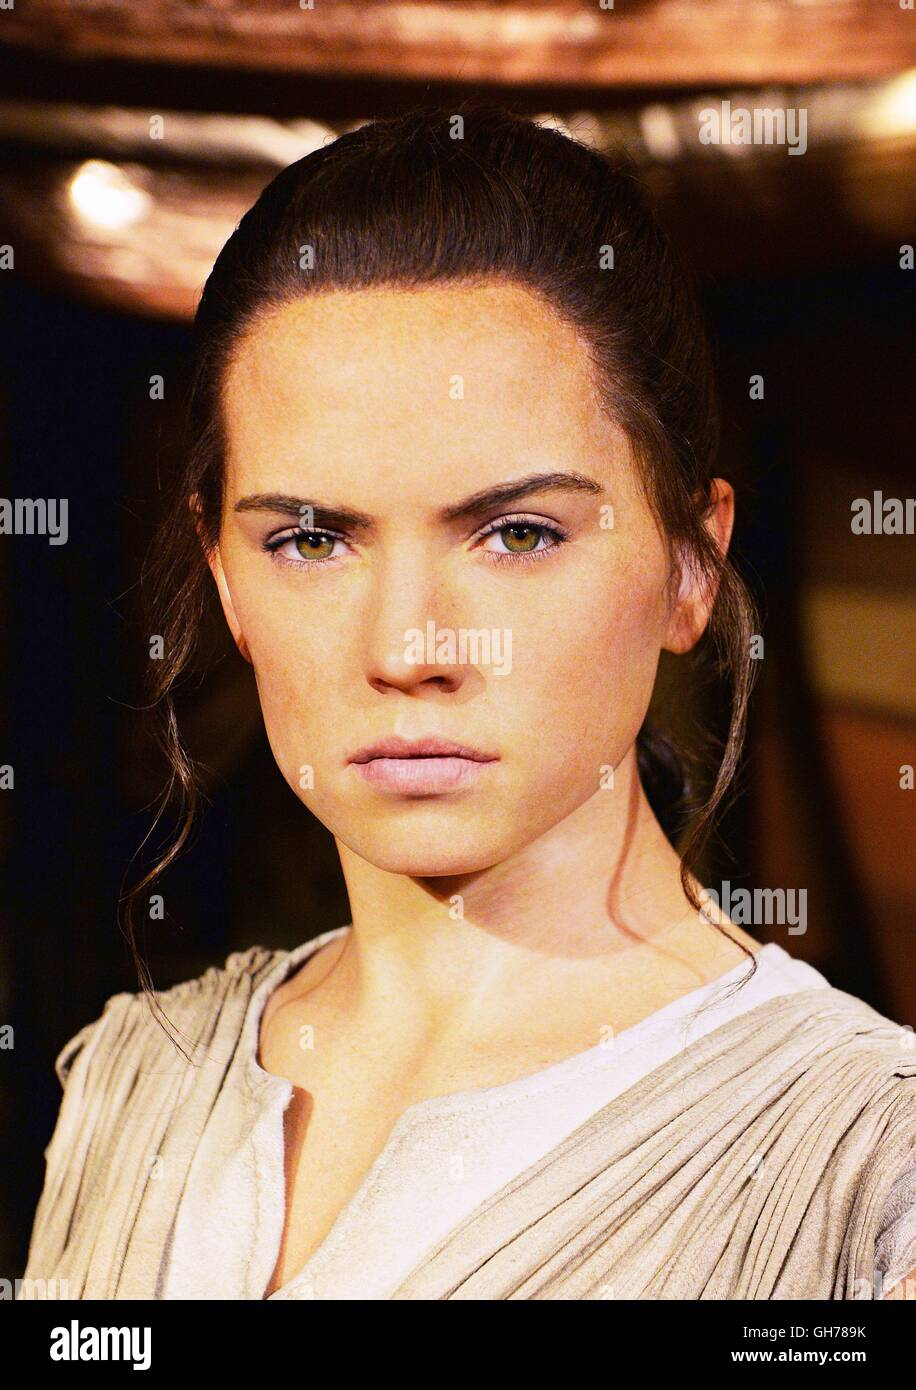 Star Wars The Last Jedi Release Date Philippines >> Rey Star Wars Stock Photos & Rey Star Wars Stock Images - Alamy